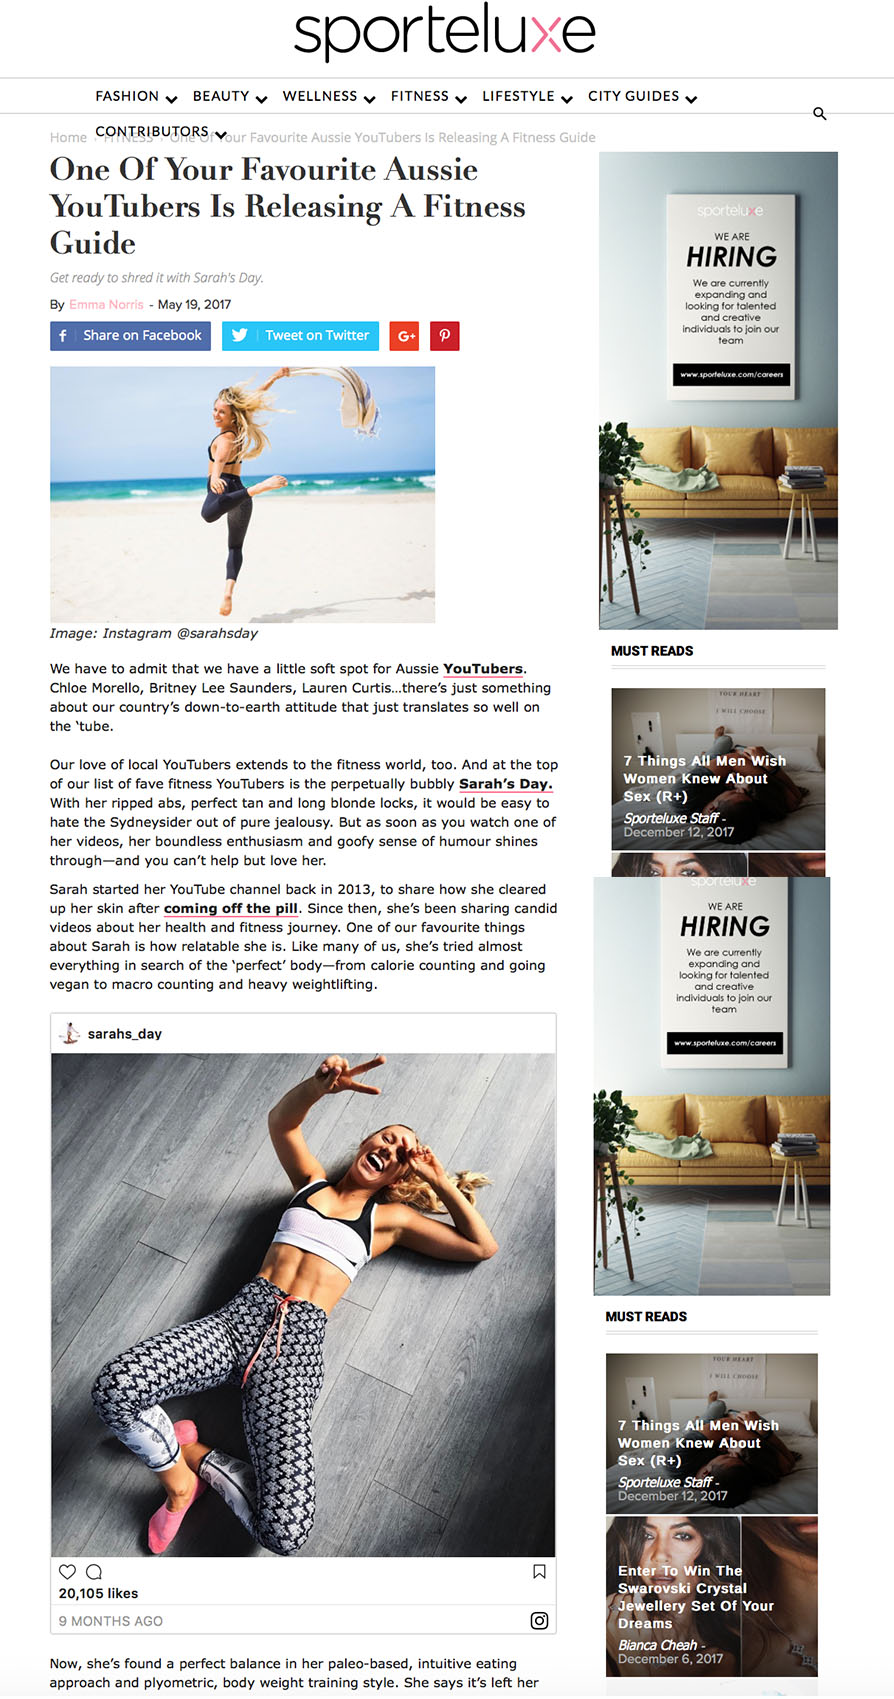 Sportluxe - Sarah's Day Fitness Guide